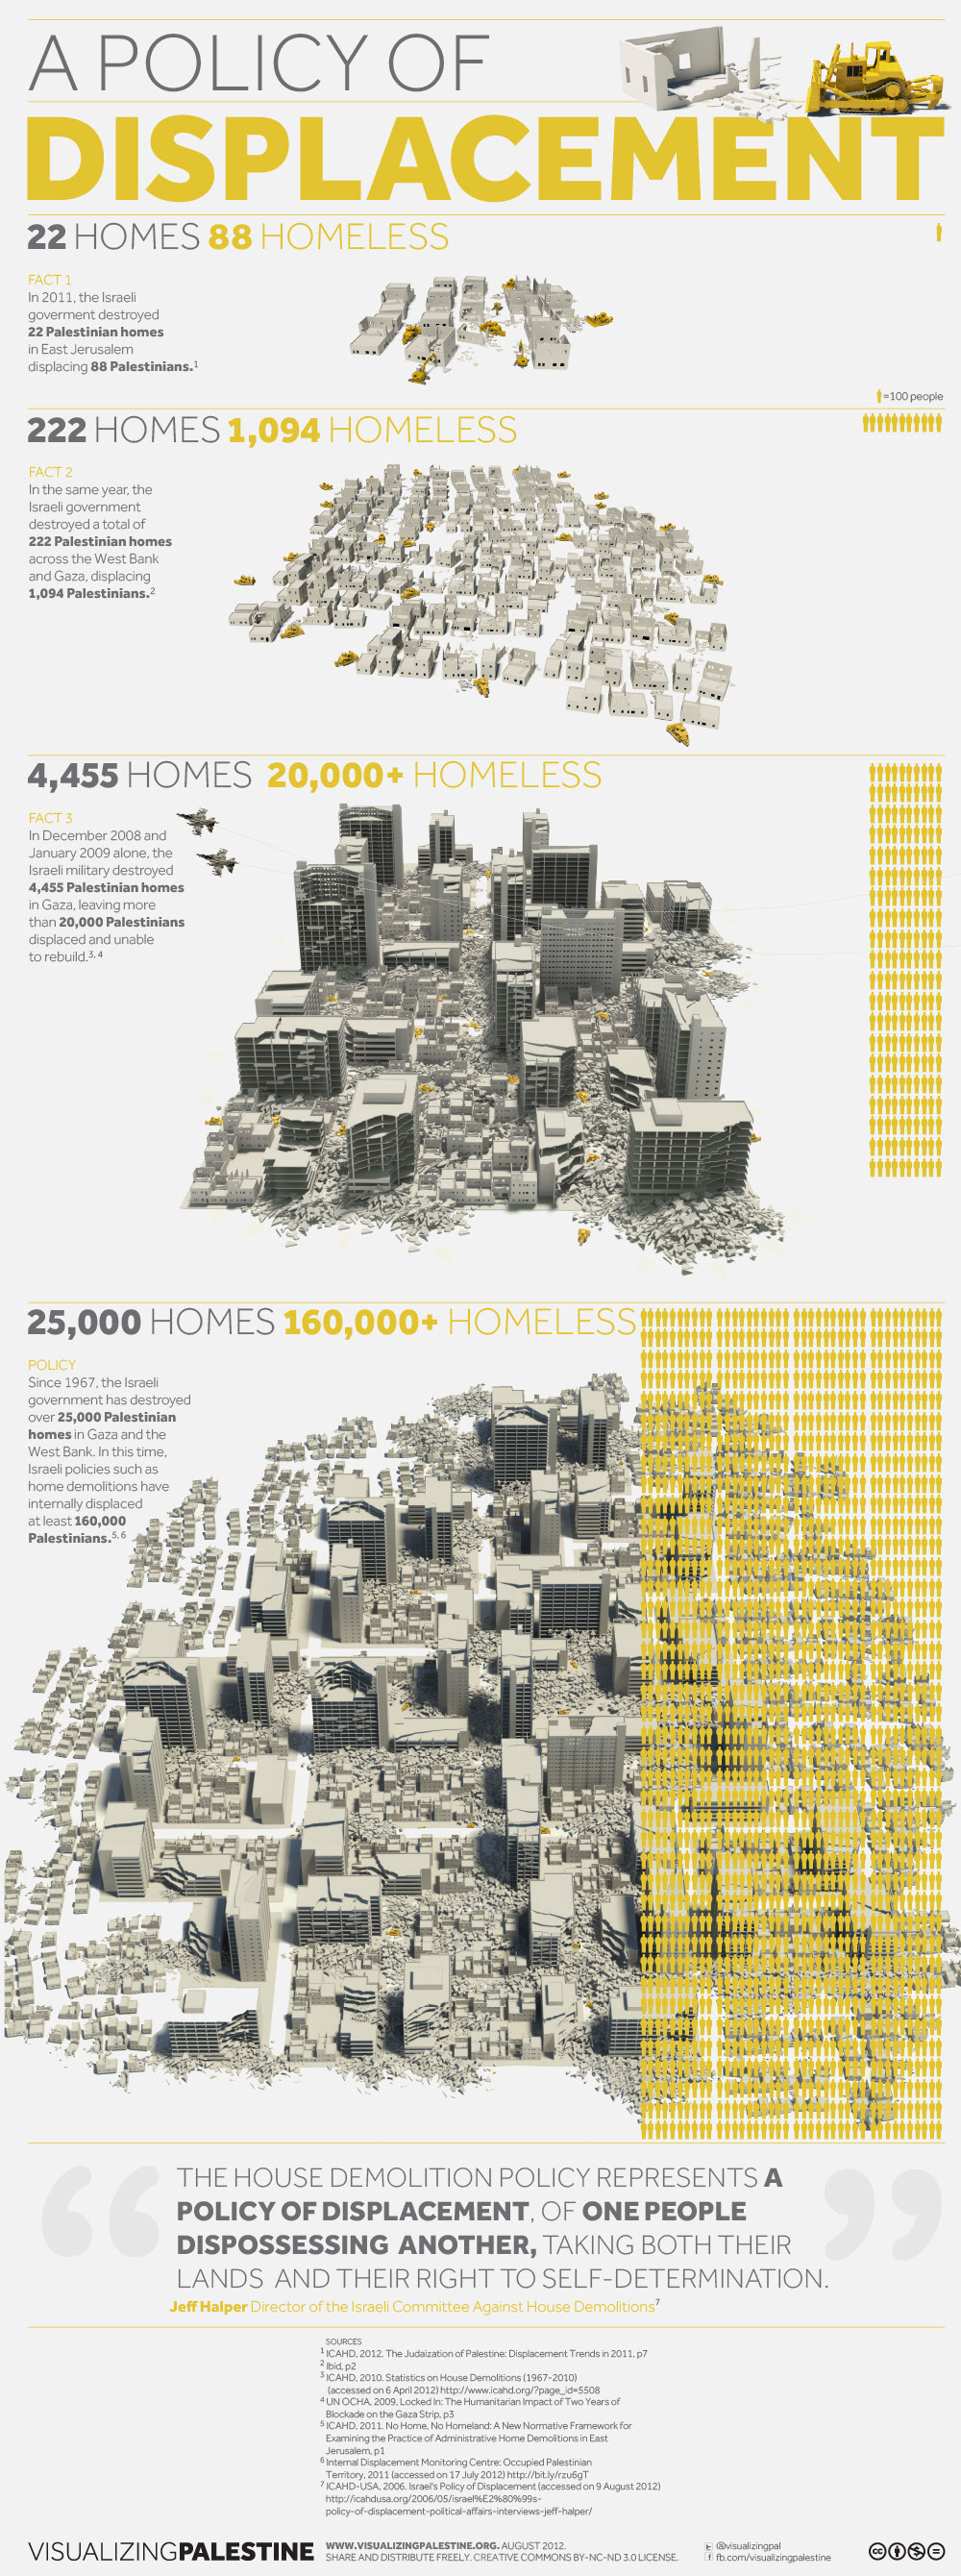 Palestinian Ruins-infographic